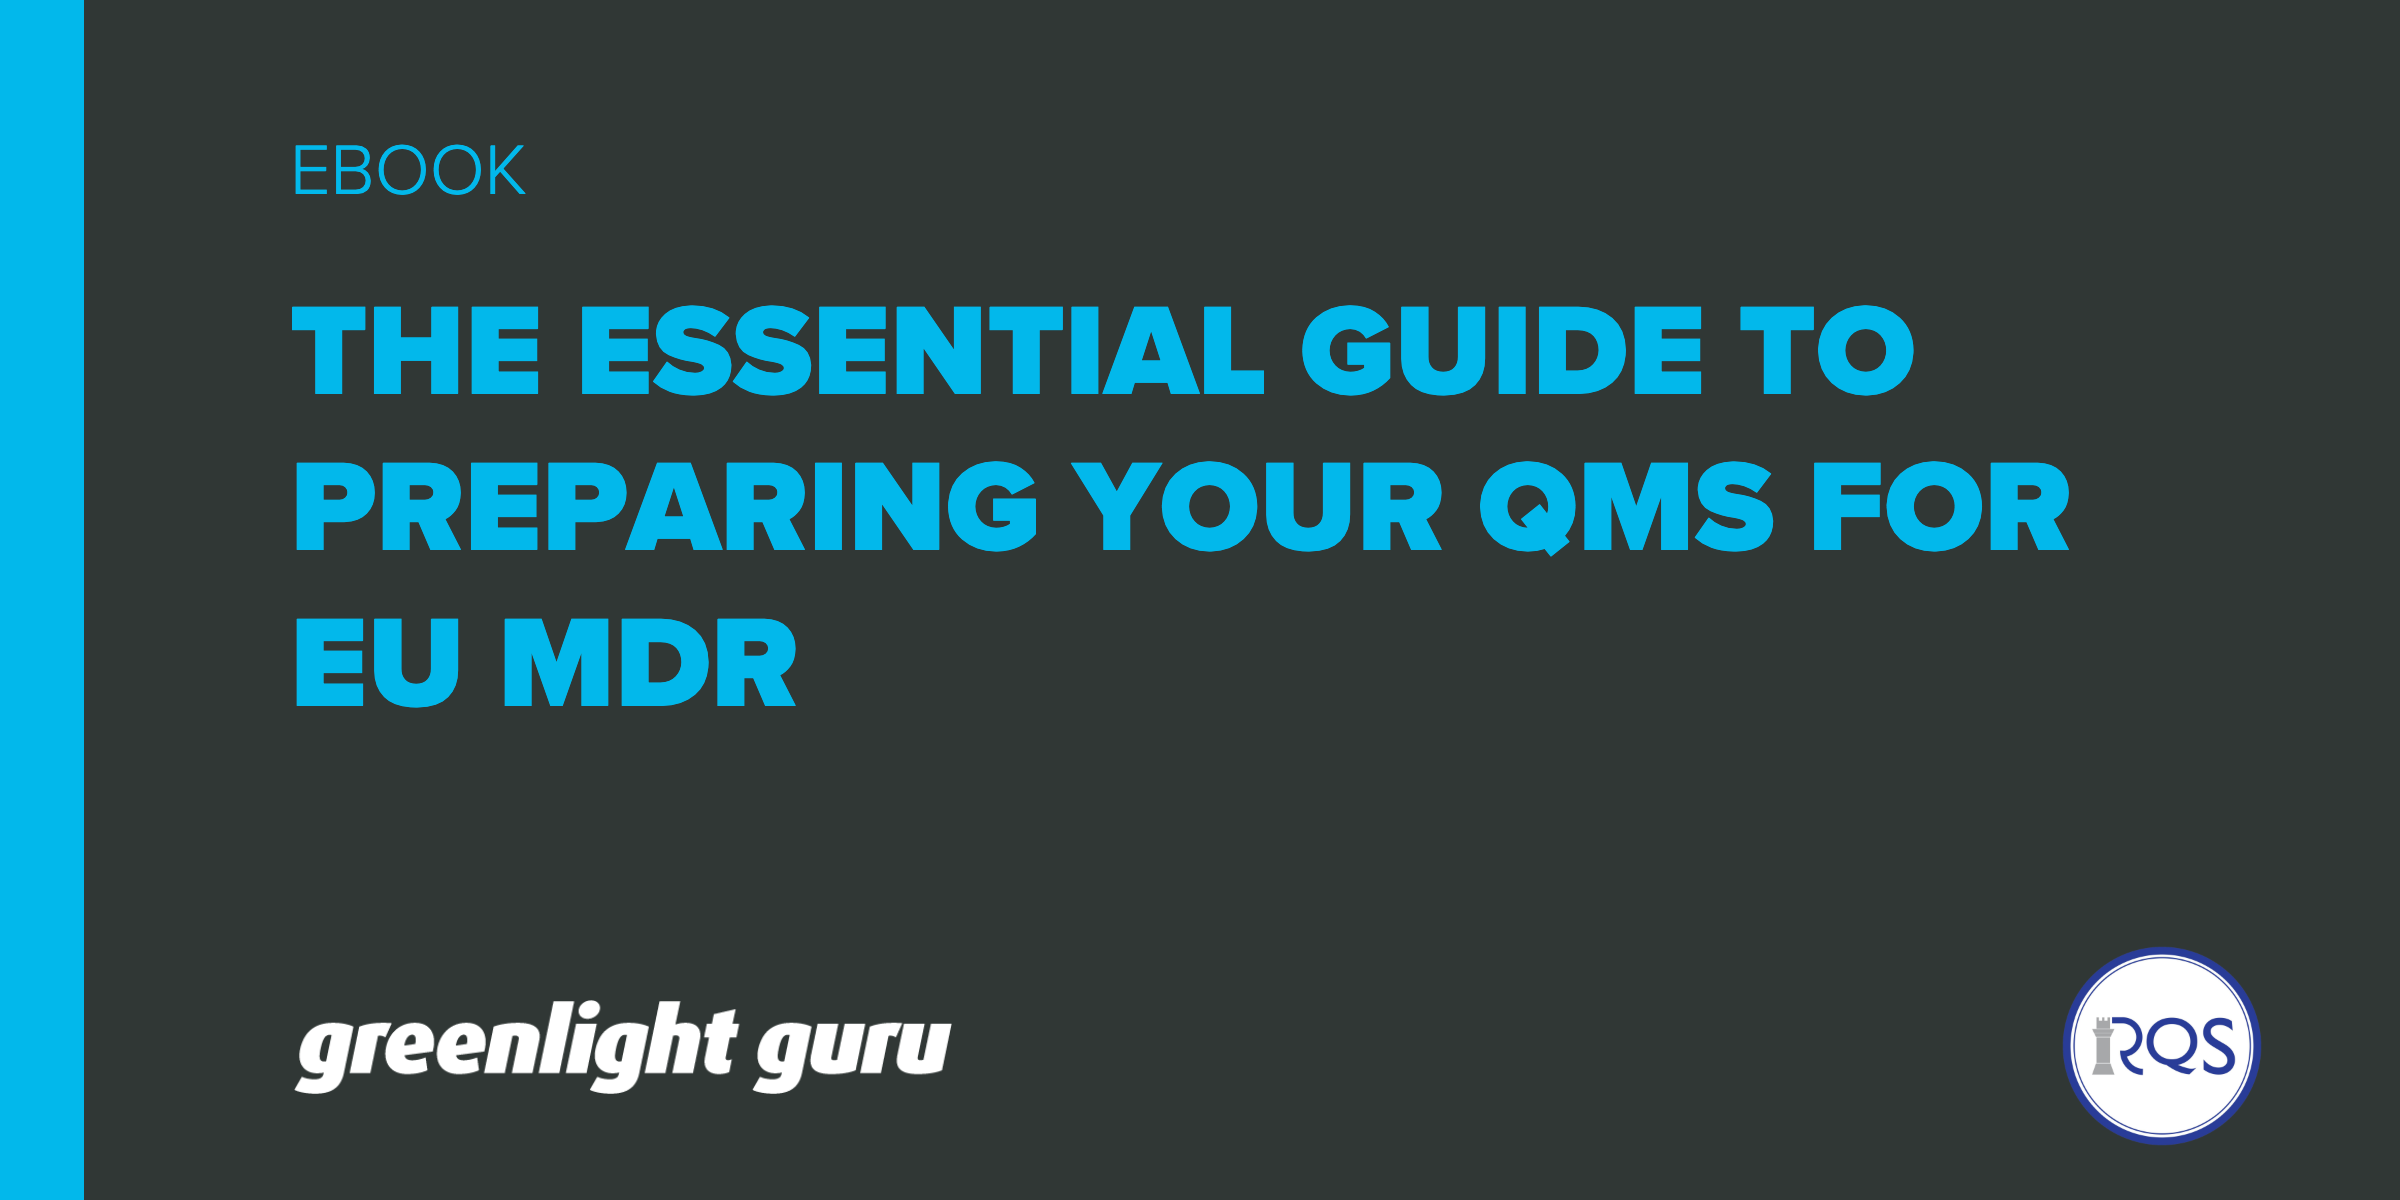 the essential guide to preparing your qms for eu mdr